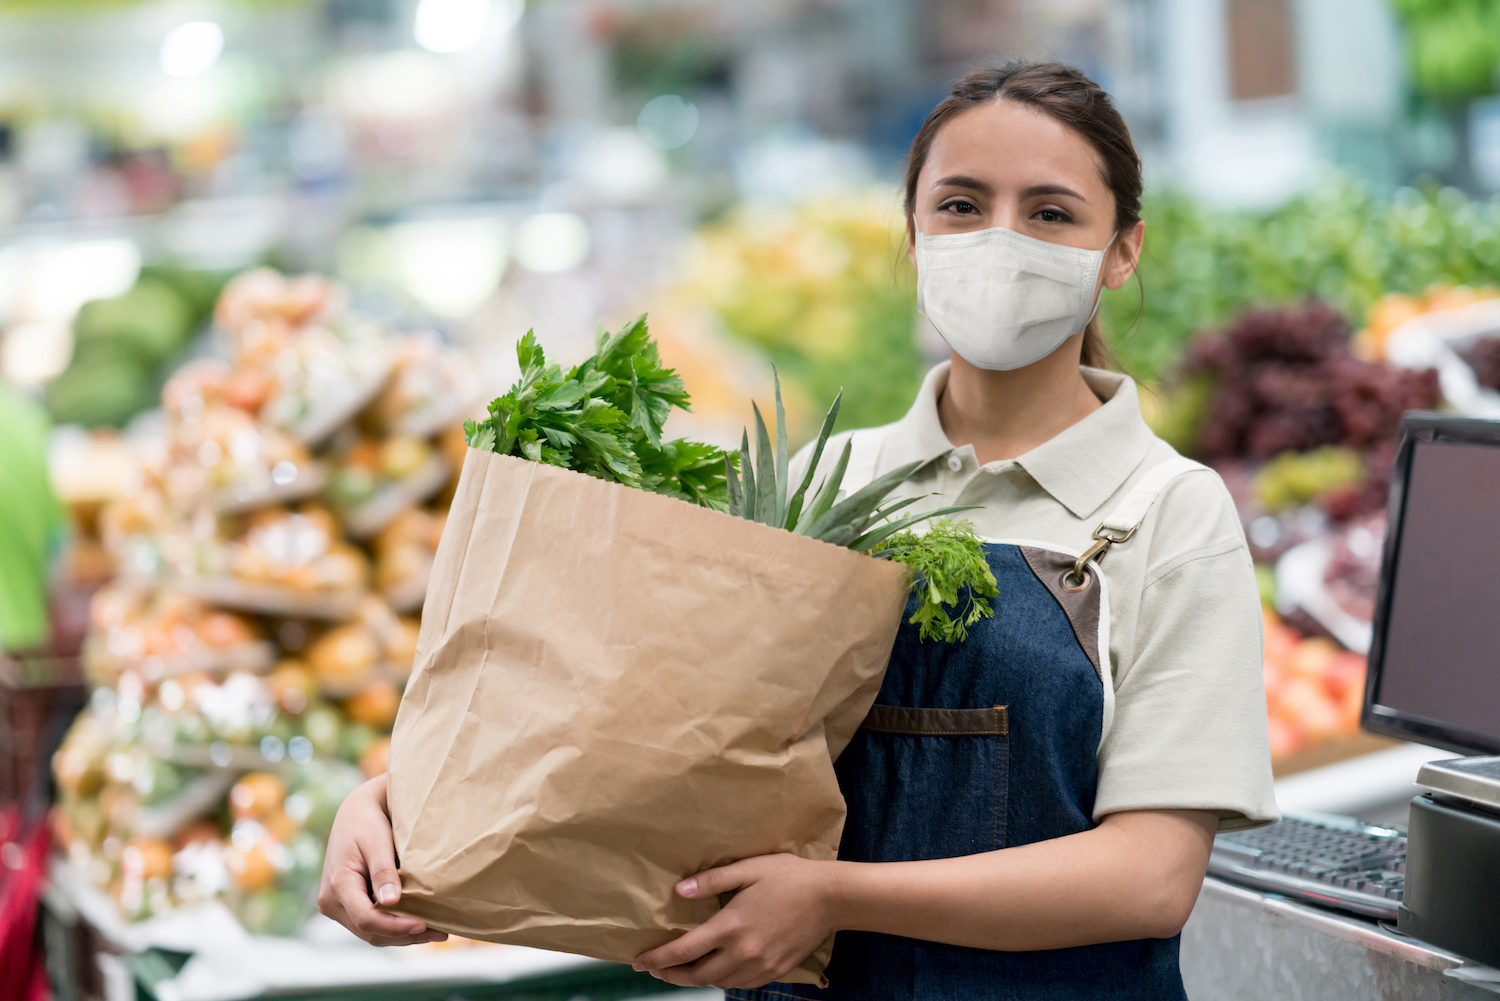 Rakuten Insight research reveals that shopping trends are shifting toward sustainability in 2020 in response to the pandemic.